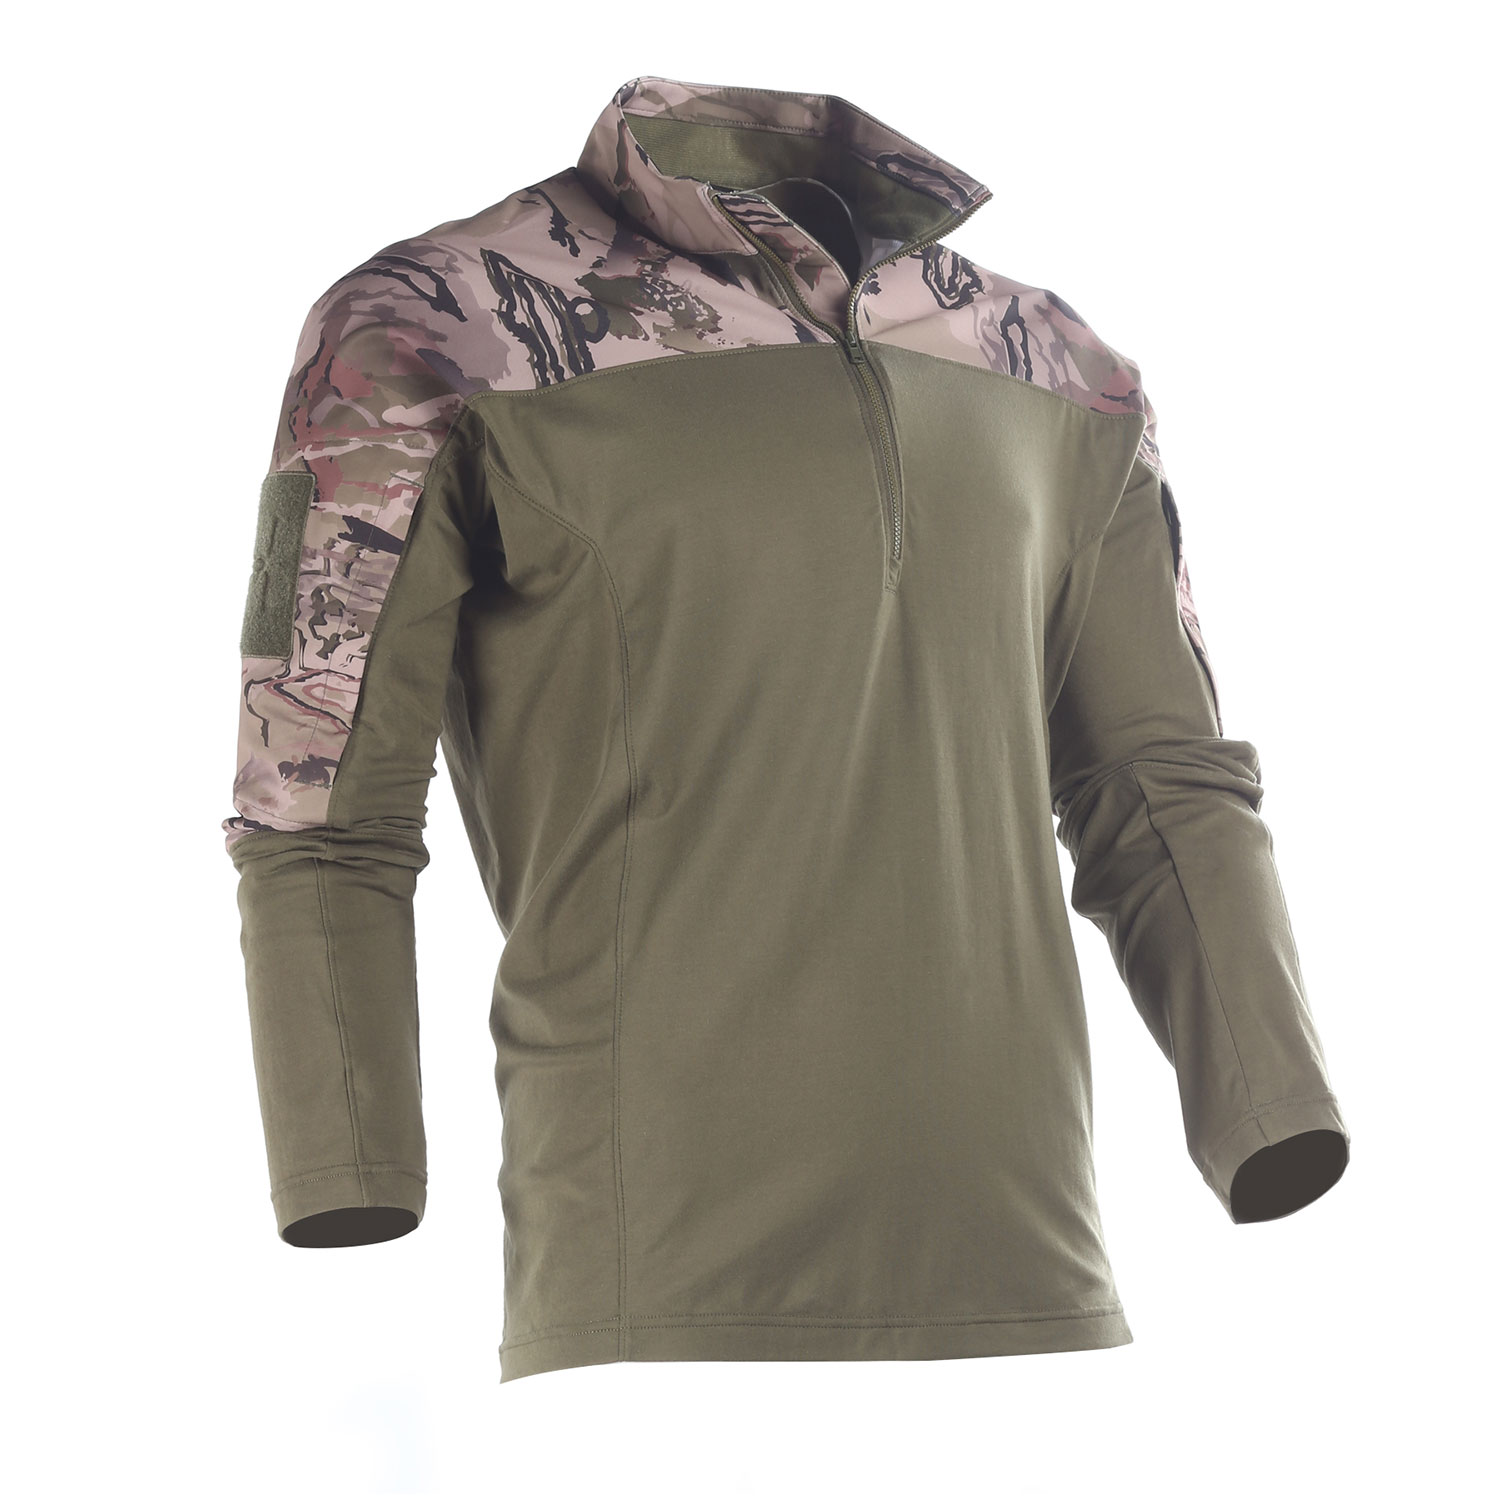 Under Armour Tactical Combat Shirt 2.0